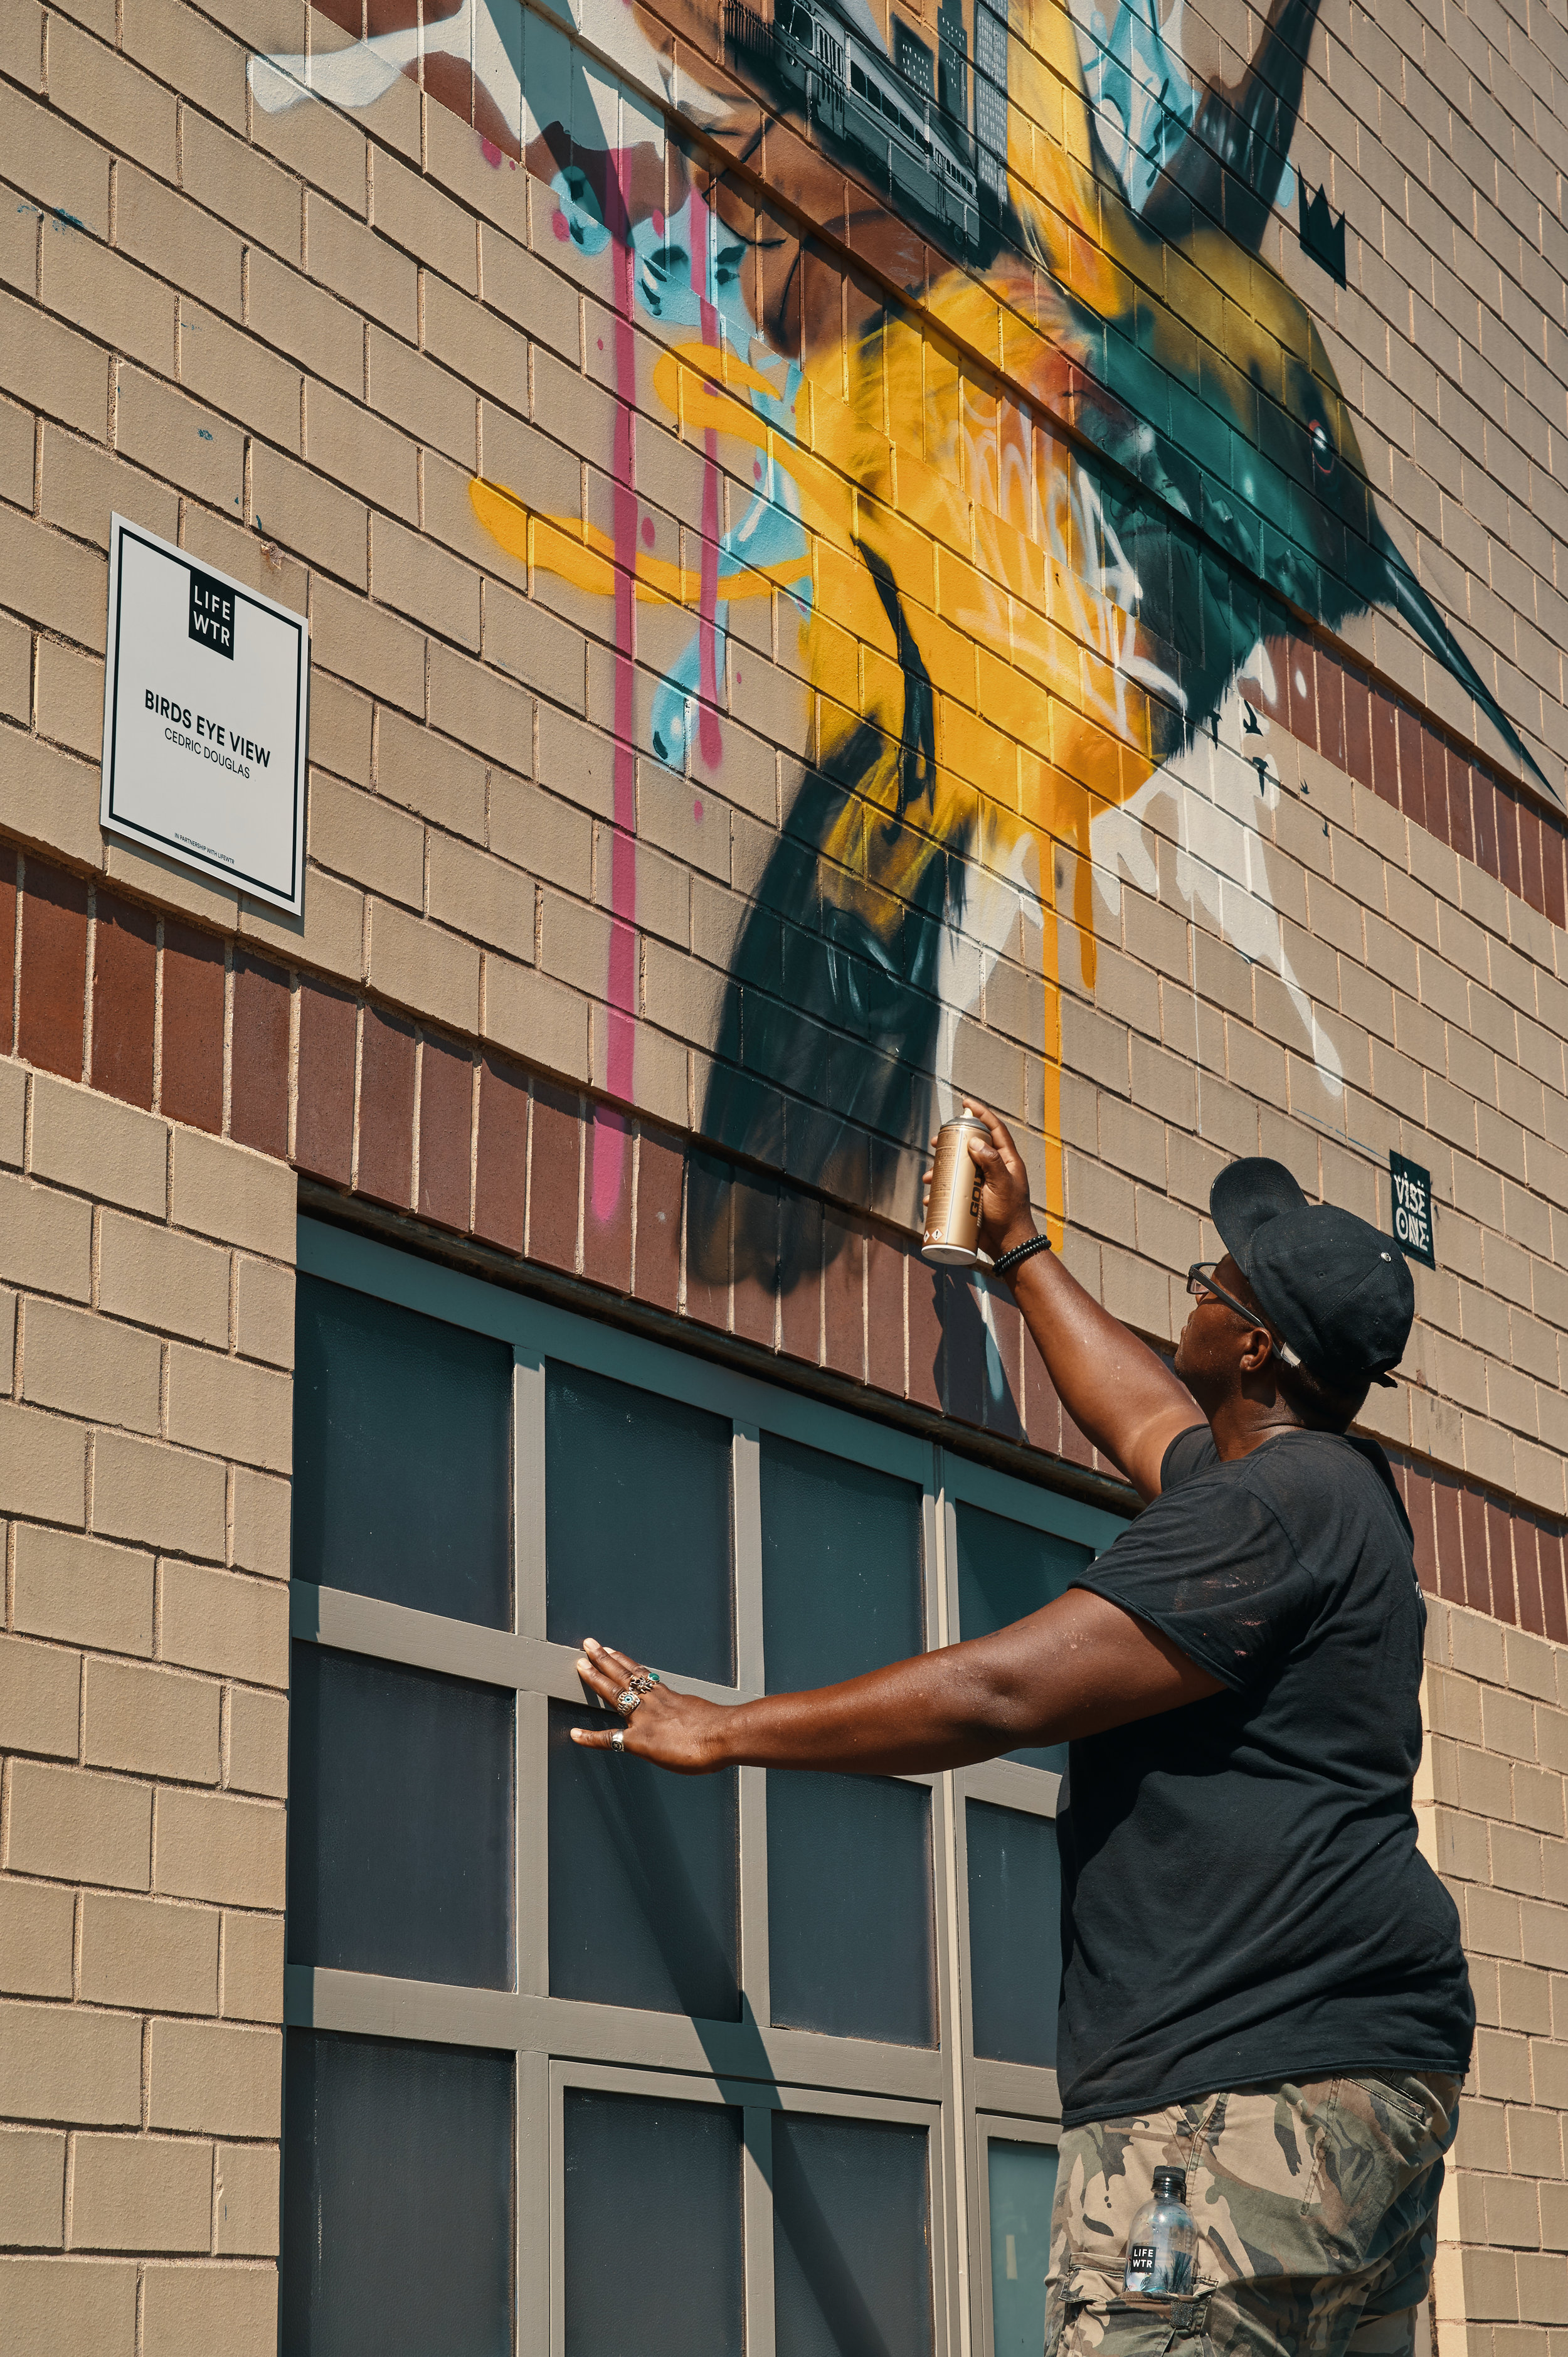 Cedric Douglas putting the finishing touches on his mural.